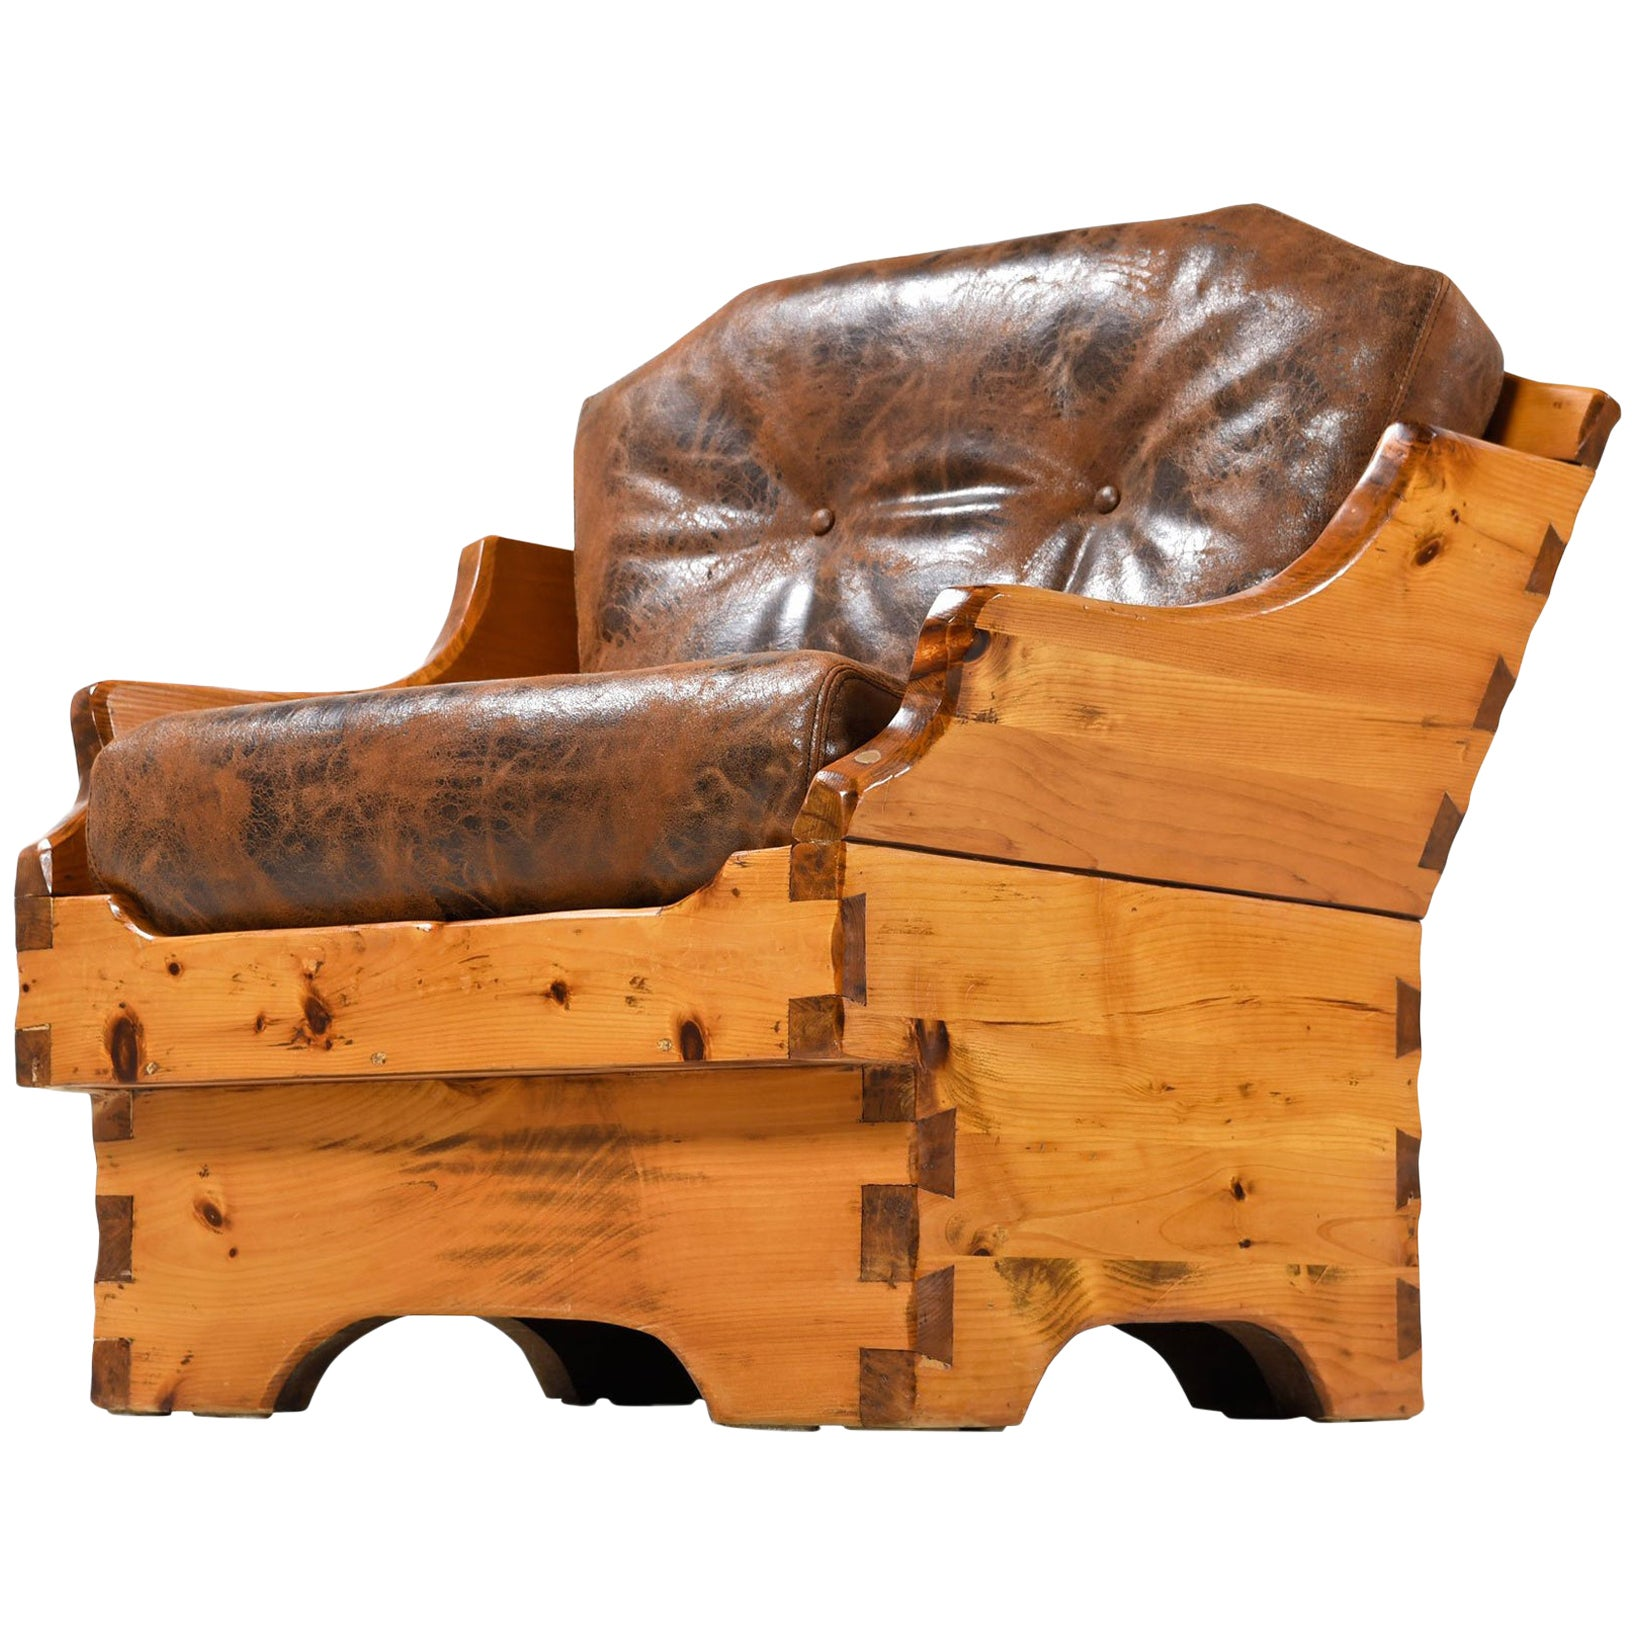 1950s Handmade Rustic Arts & Crafts Style Armchair, Solid Pine and Leather